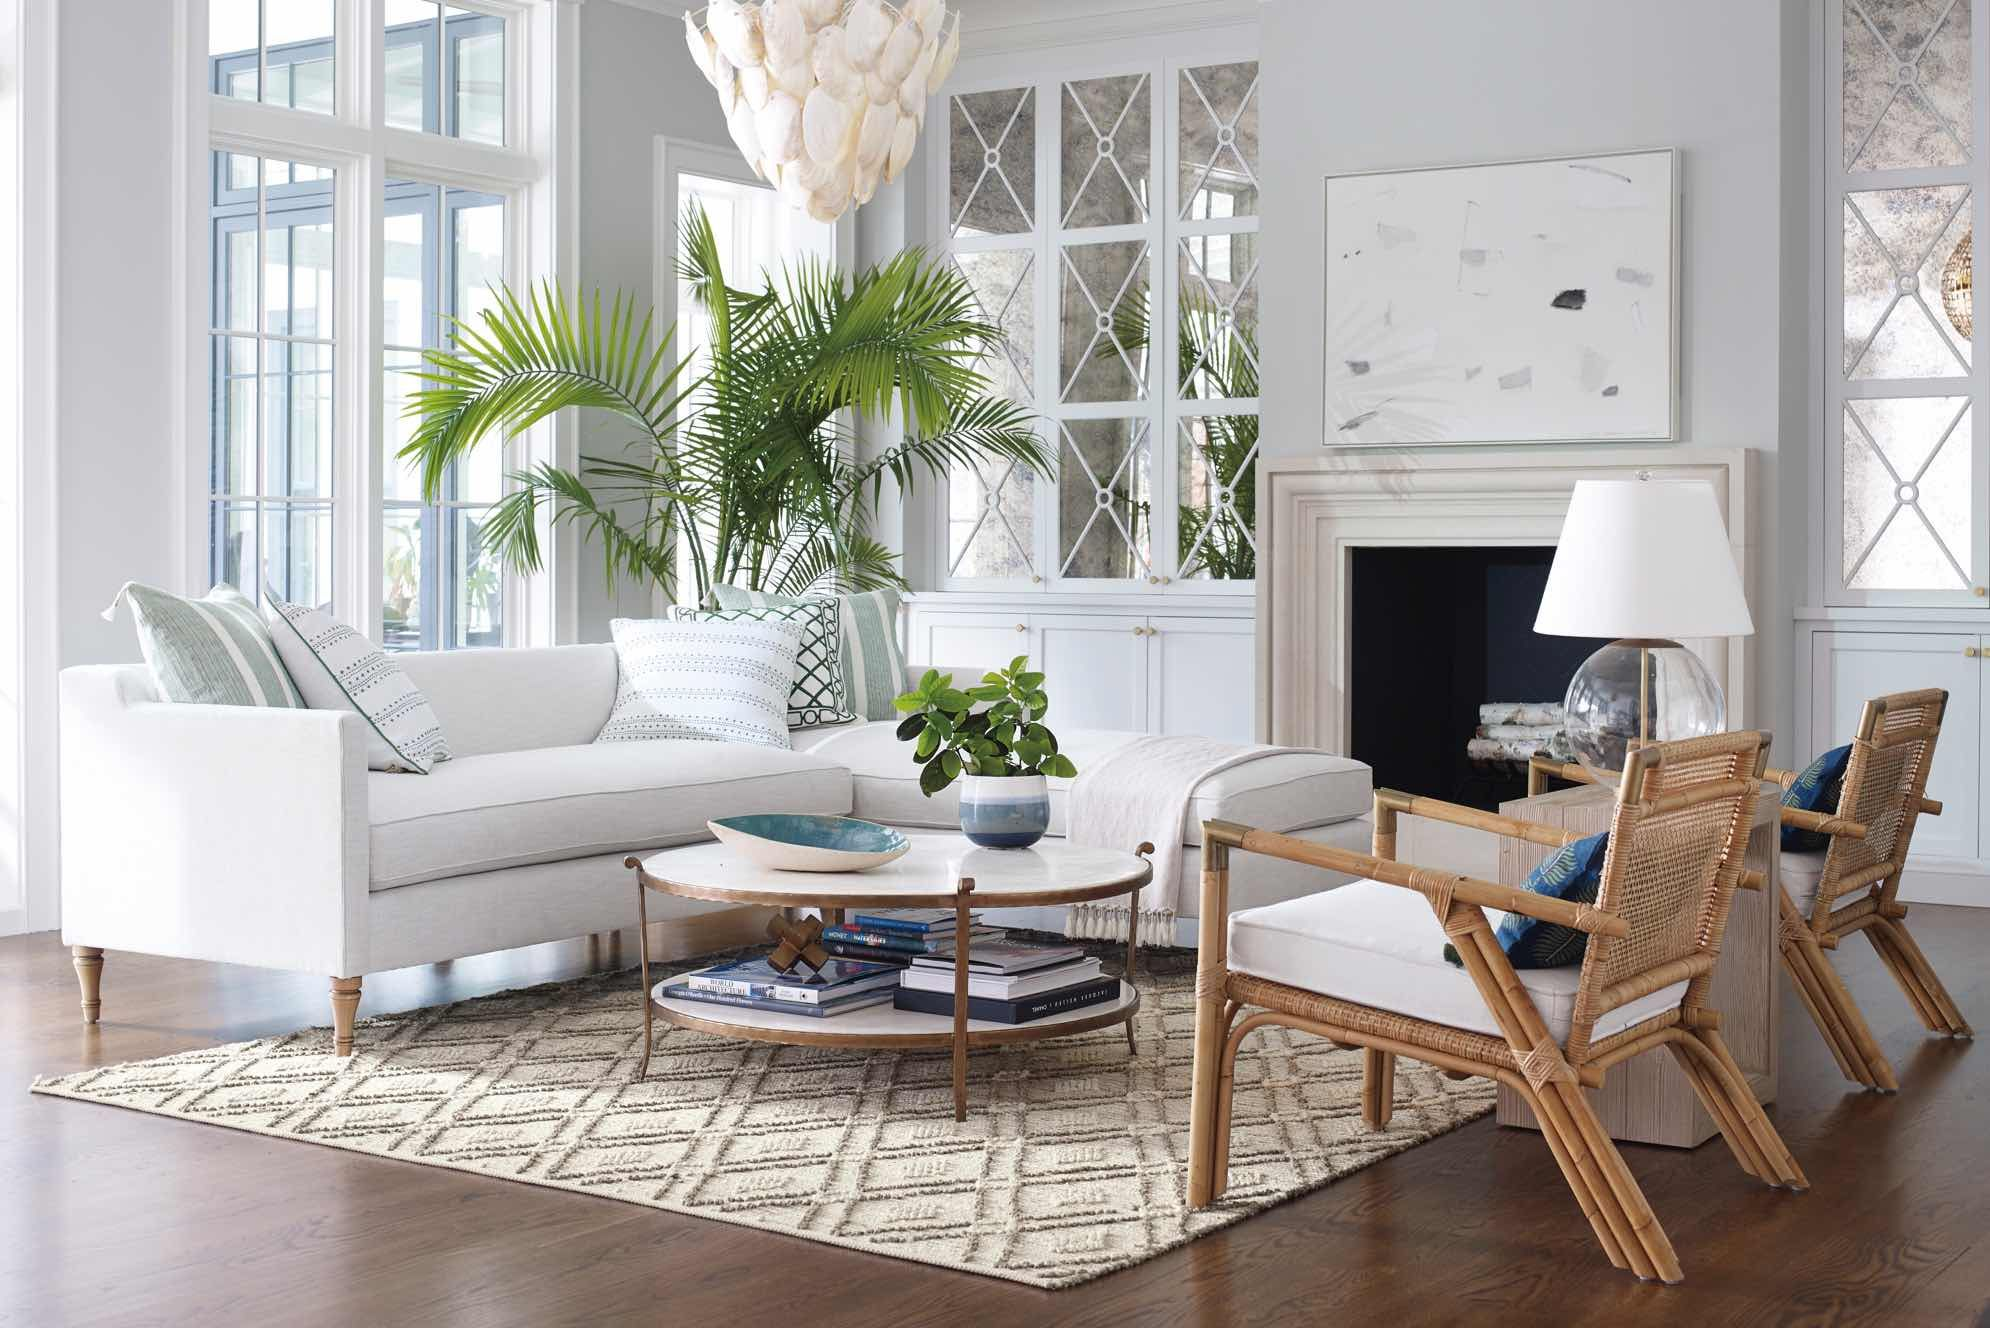 Shop The Look Living Room Designer Rooms Serena Lily In 2020 Interior Design Advice Coastal Living Room Living Room Designs #shop #this #look #living #room